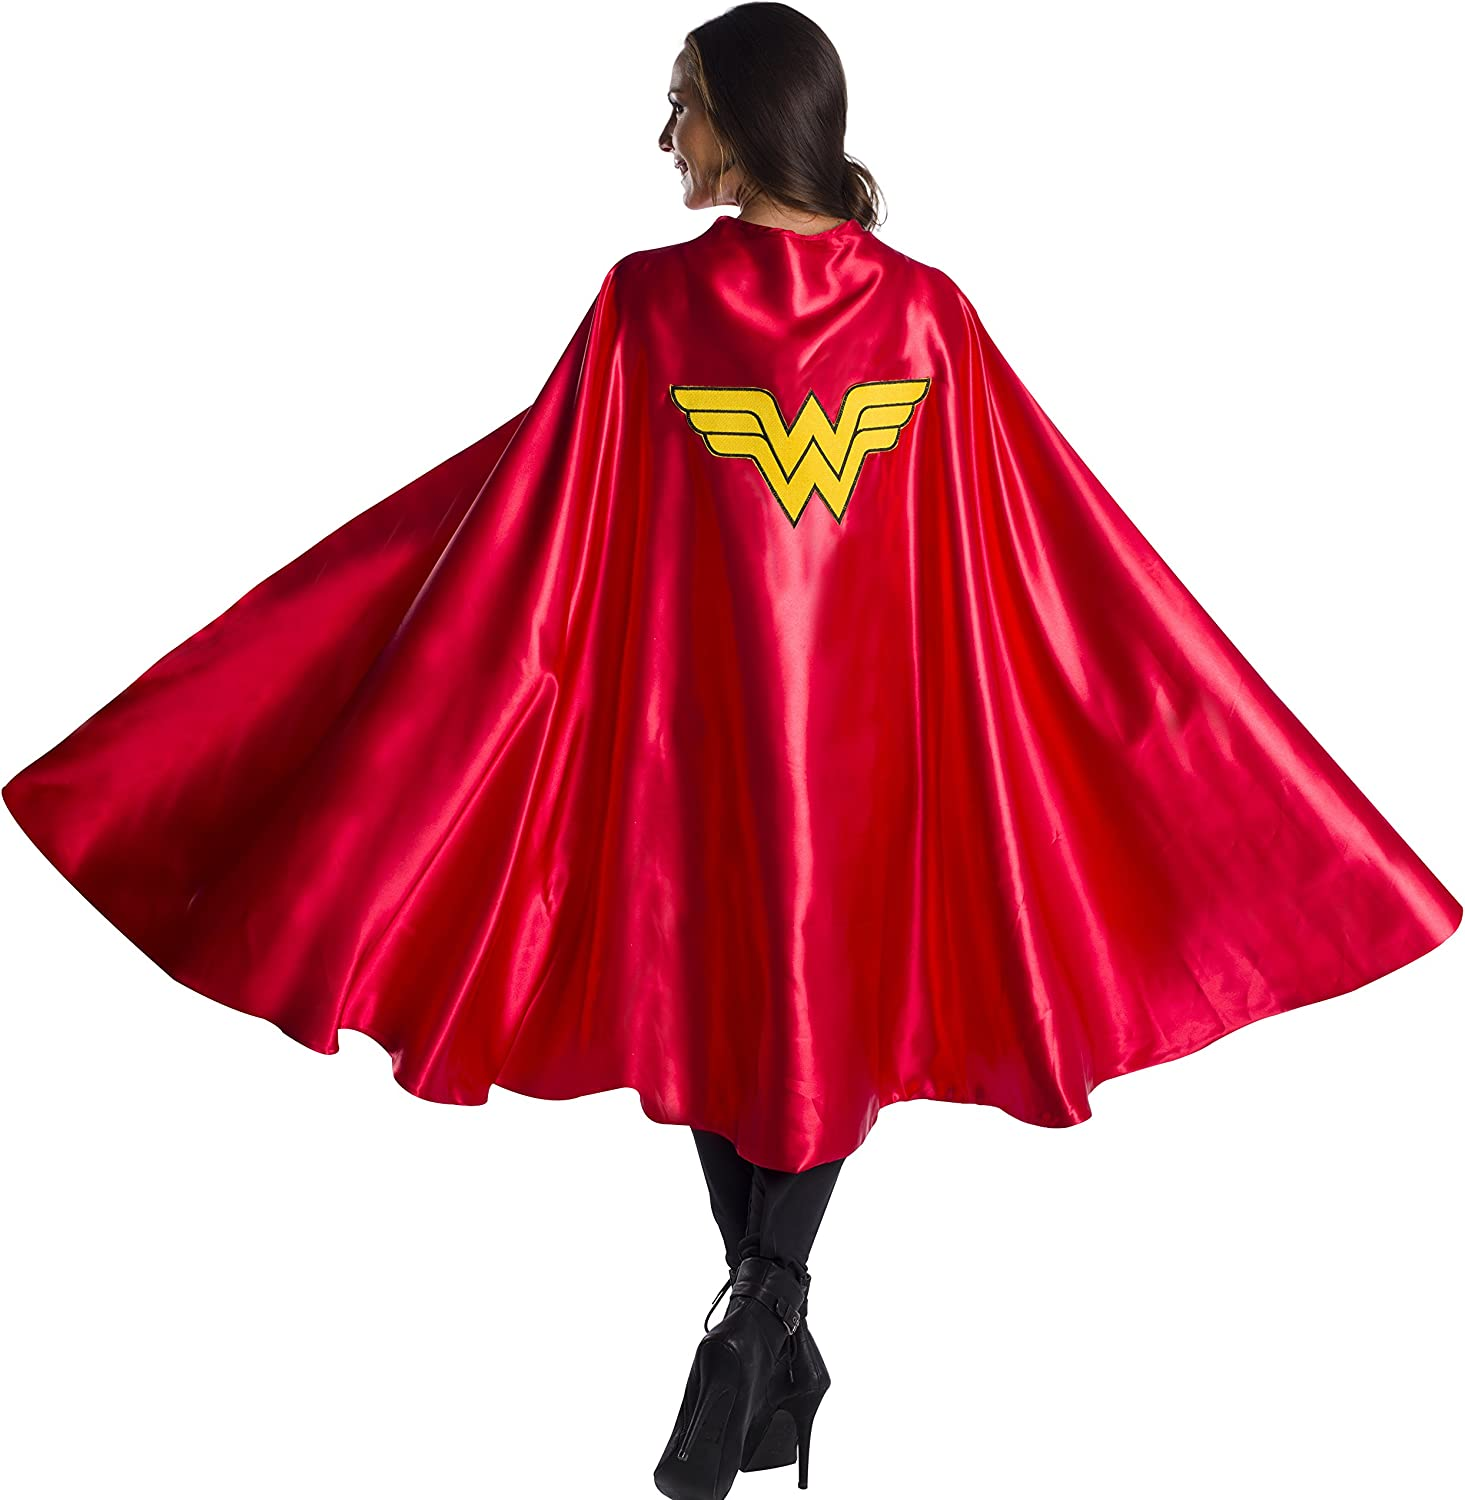 Rubie's Women's DC Comics Deluxe Wonder Woman Cape, As Shown, One Size: Clothing